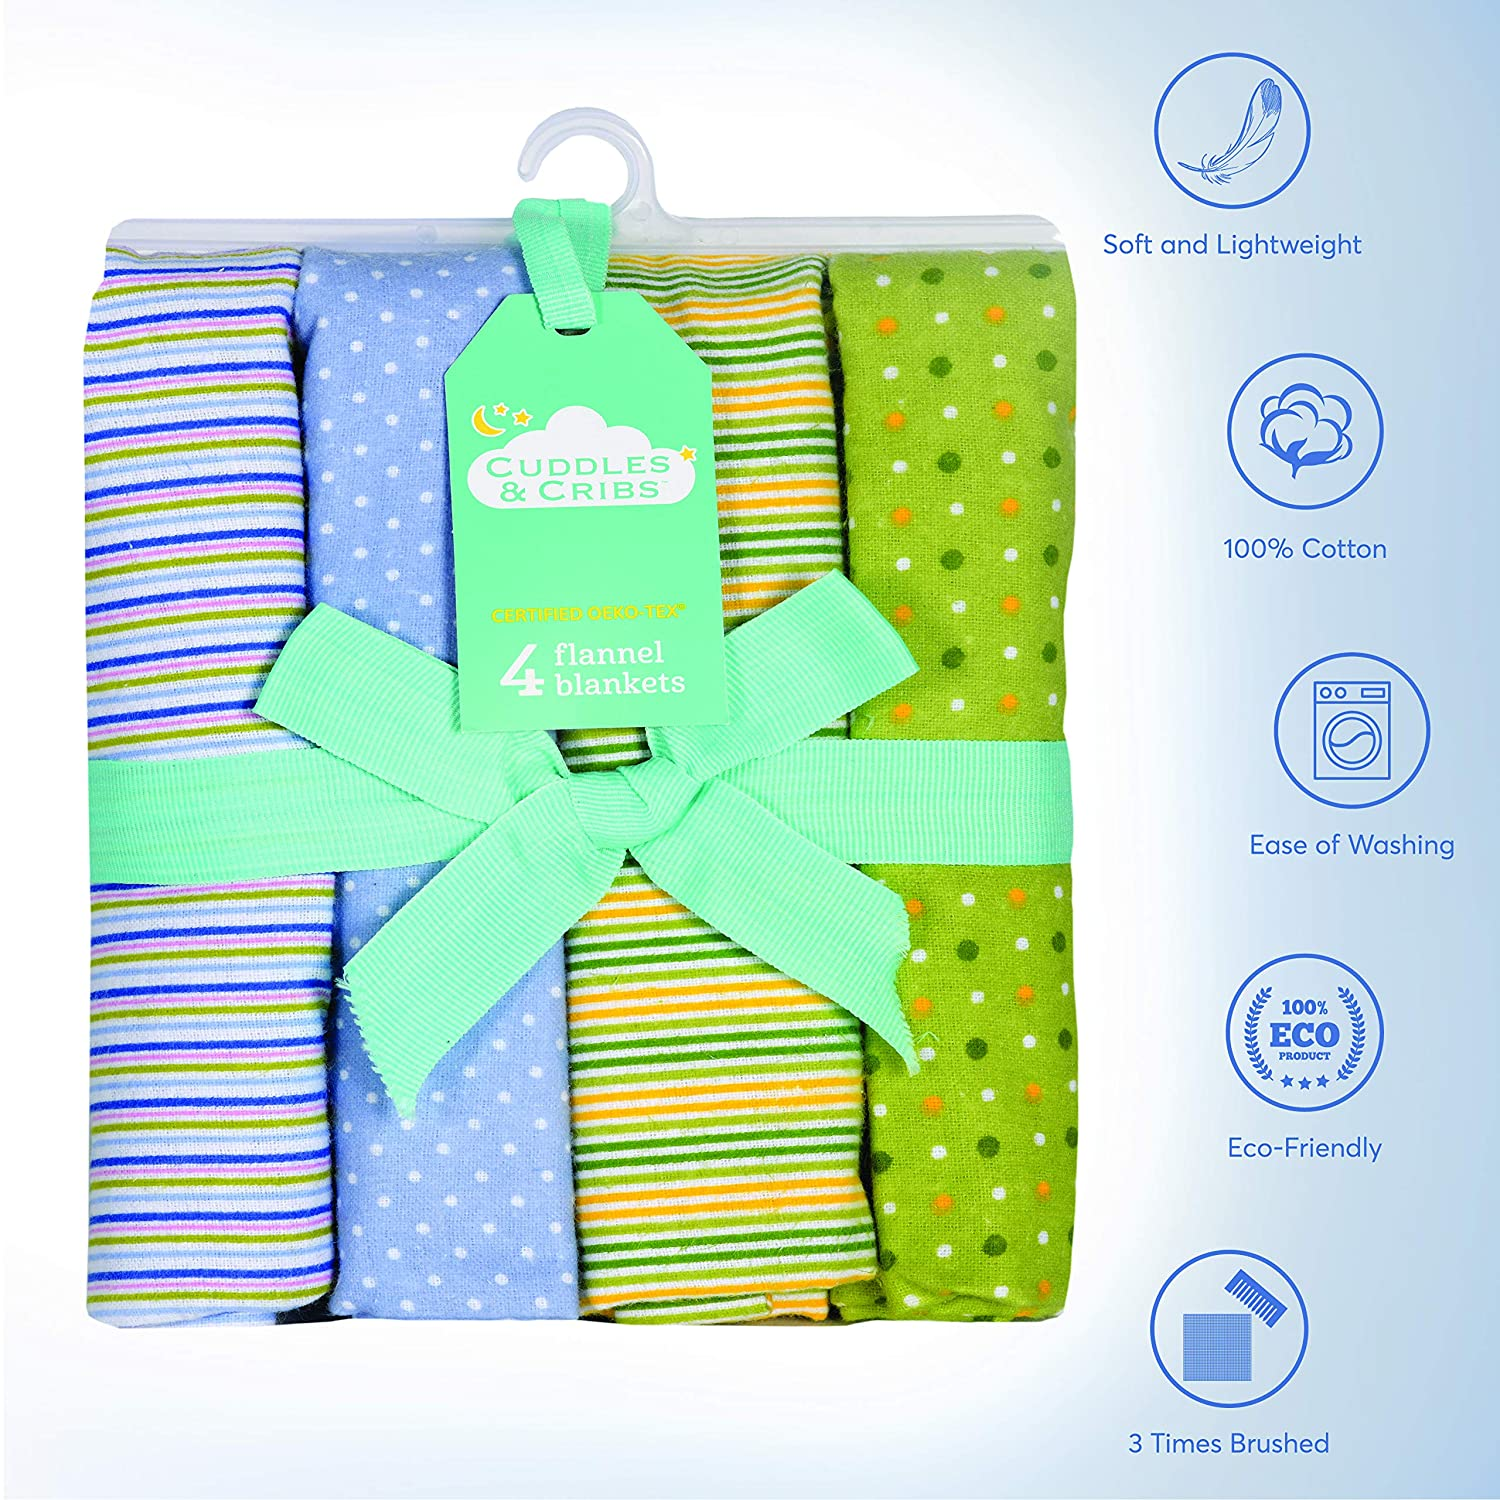 Cuddles /& Cribs Cotton Flannel Receiving Blankets Pack of 4